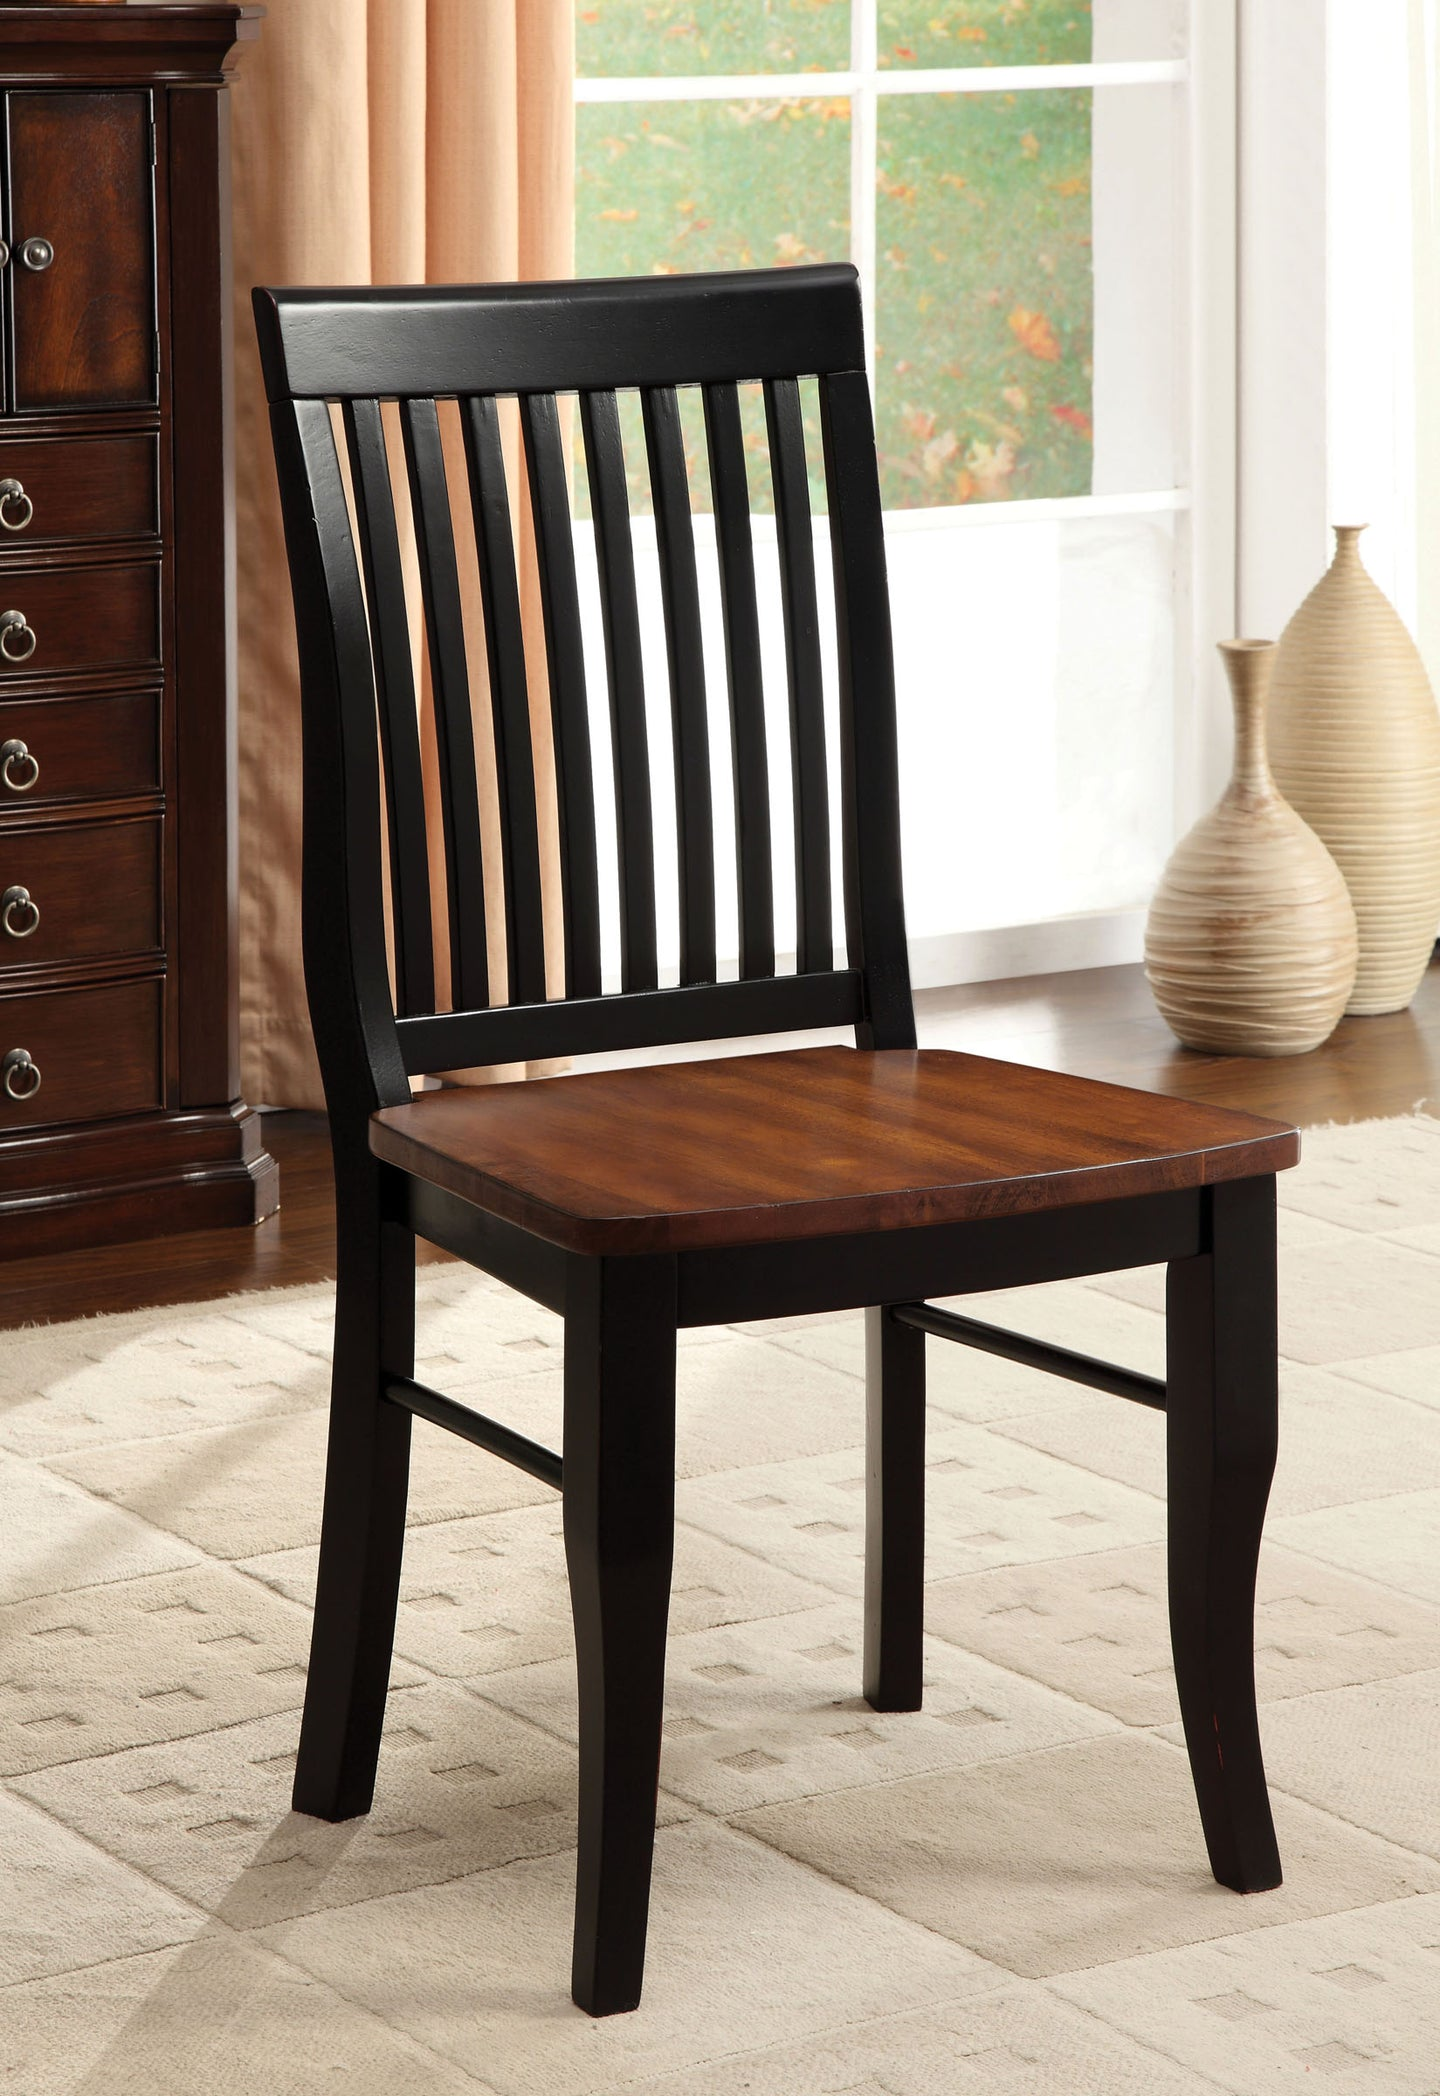 Furniture Of America Earlham Antique Oak Black Wood Finish 2 Piece Dining Side Chair